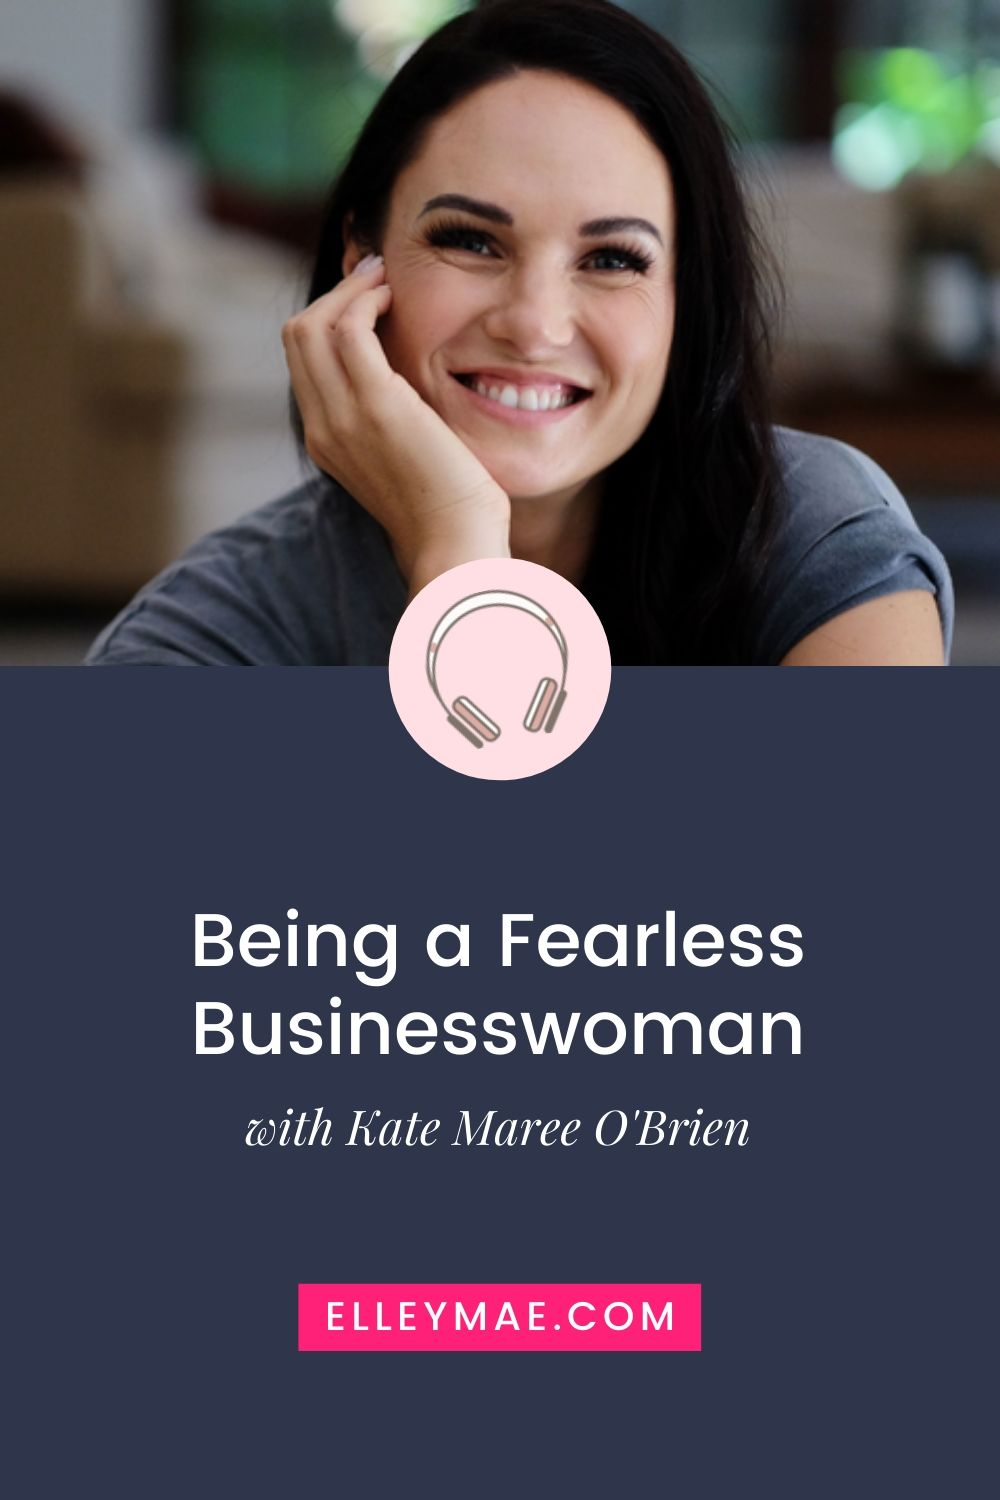 How to Be a Fearless Businesswoman with Kate Maree O'Brien